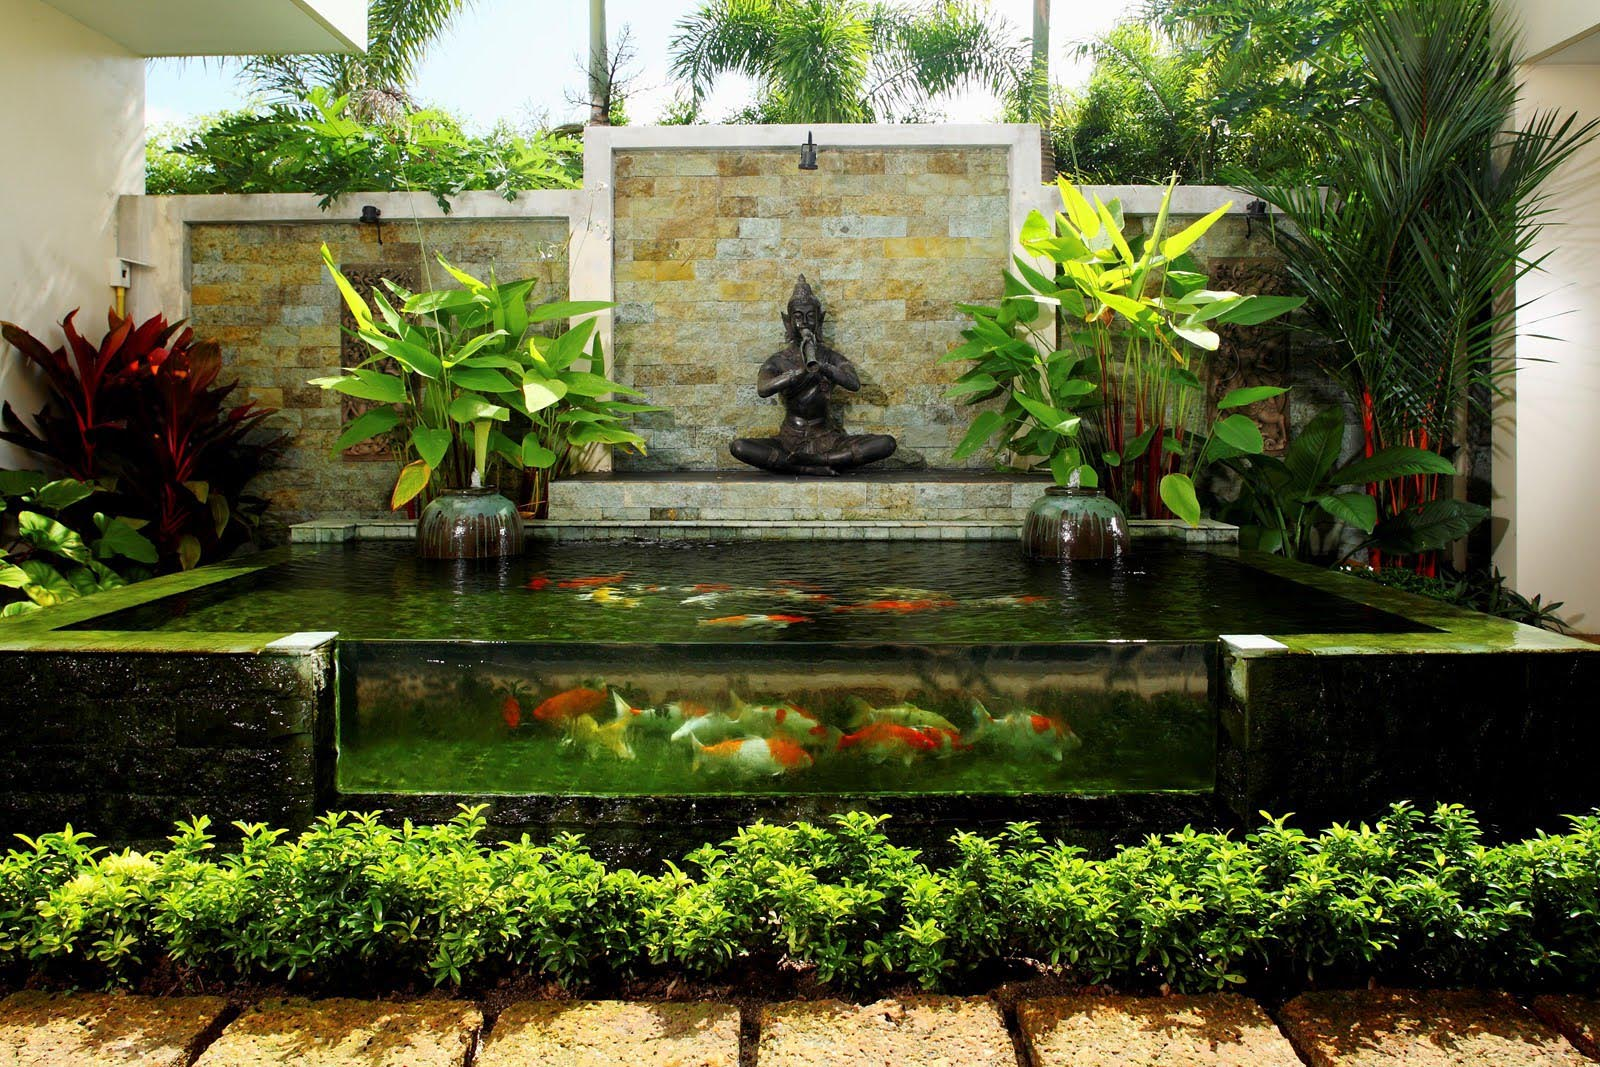 Building garden pond fountains backyard design ideas for Garden pond ideas